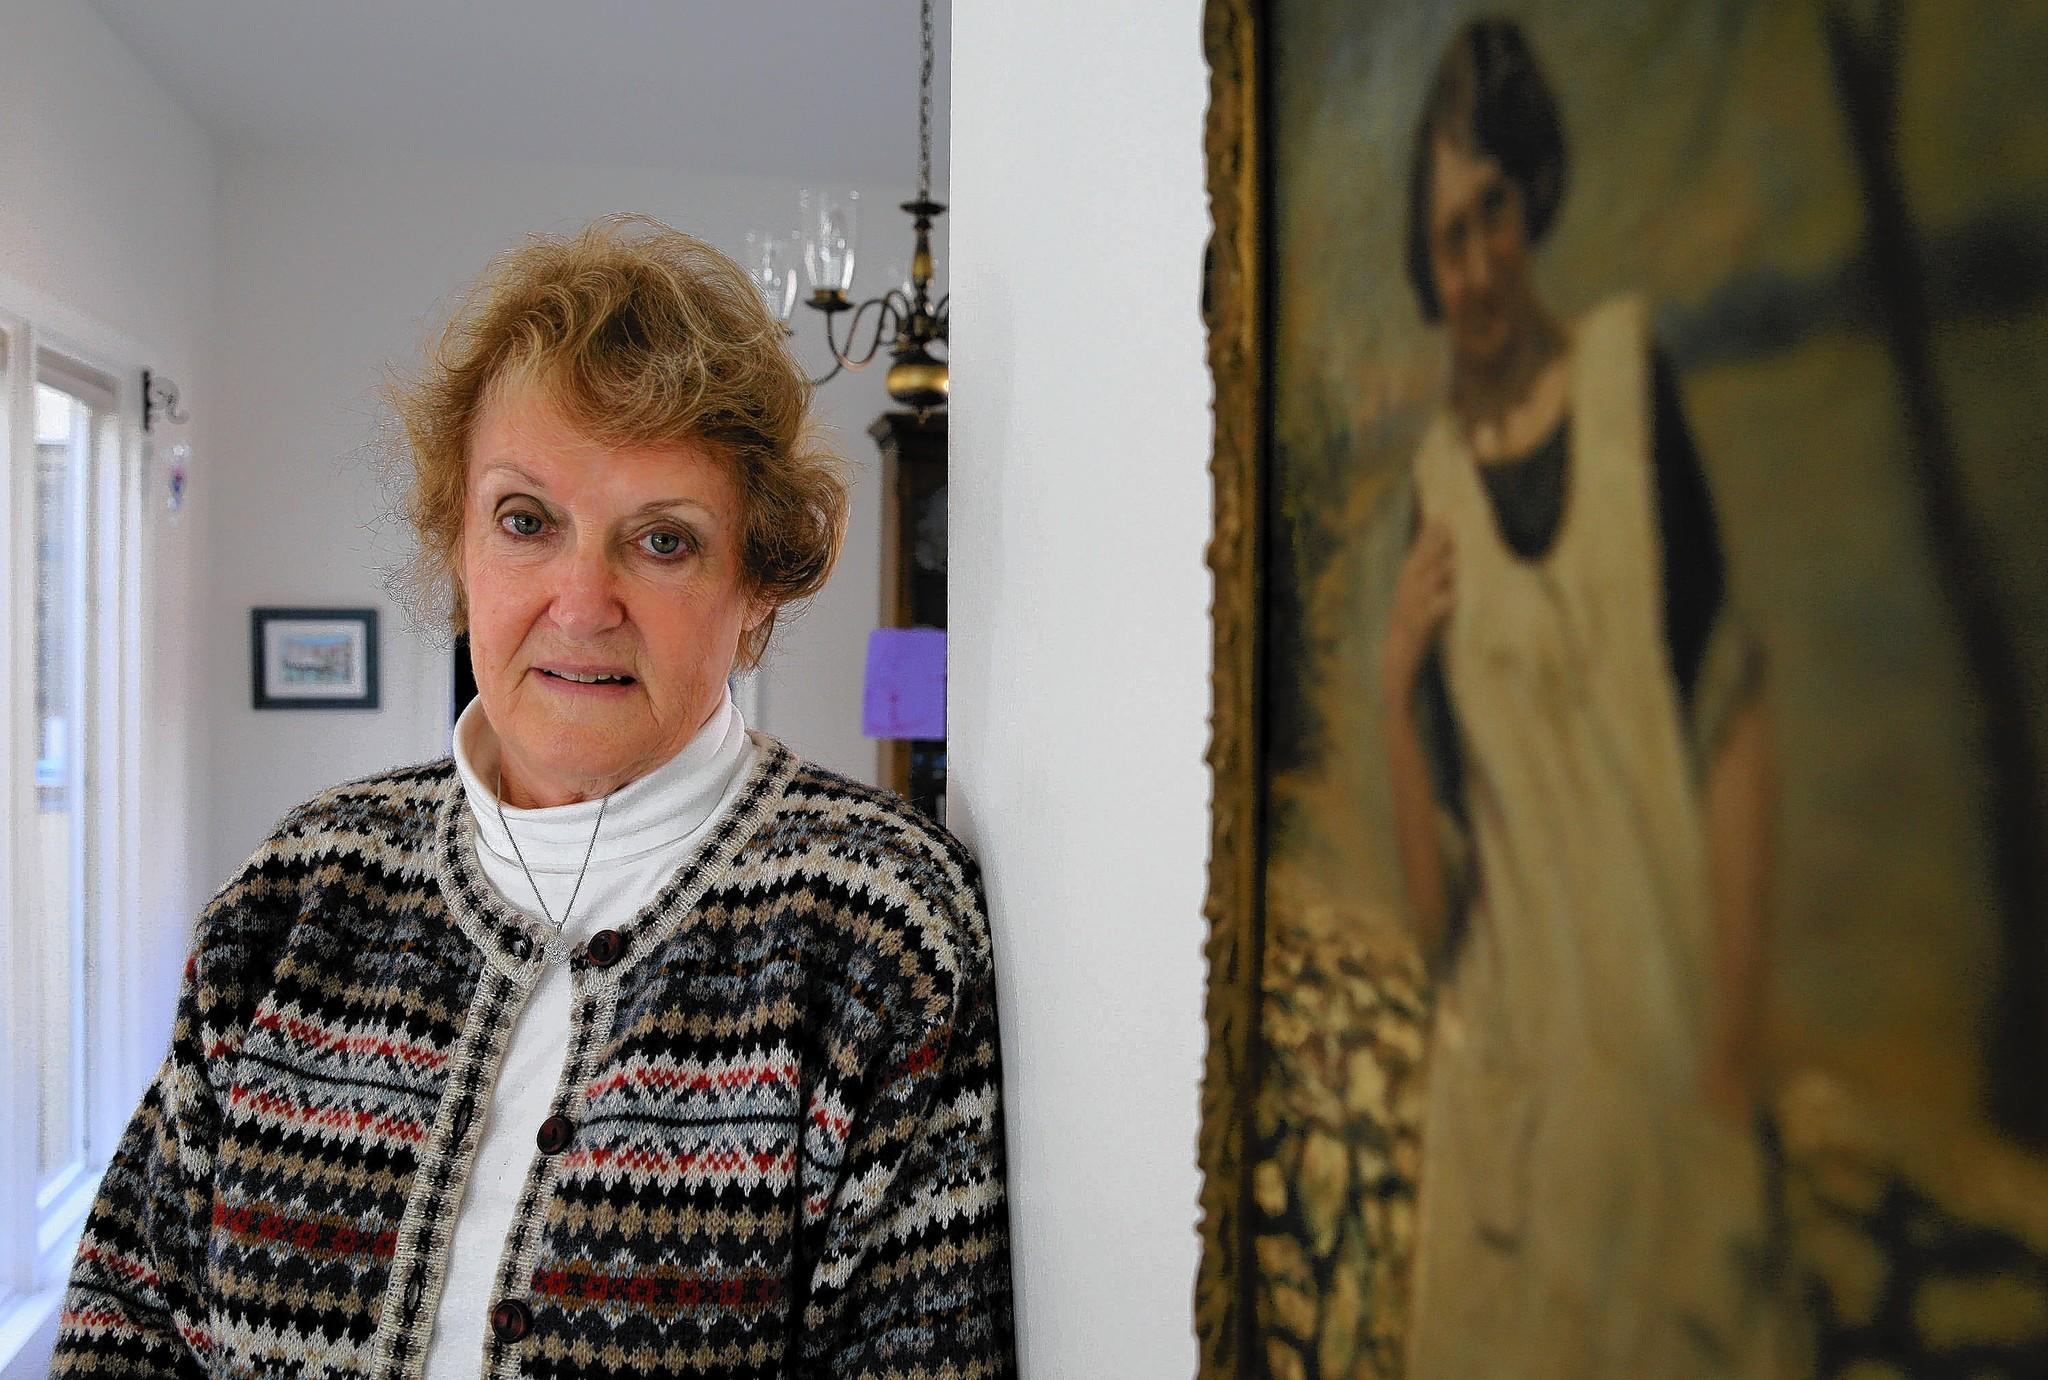 Jacqueline Welch, standing next to a painting of her mother in her Burr Ridge home, is owed $348.98 from an old life insurance policy her mother took out. The insurance company sent the check to an old address, and the money was declared unclaimed property. It ended up in the hands of the state of Florida, and Welch is still waiting for the state to fully process her claim.